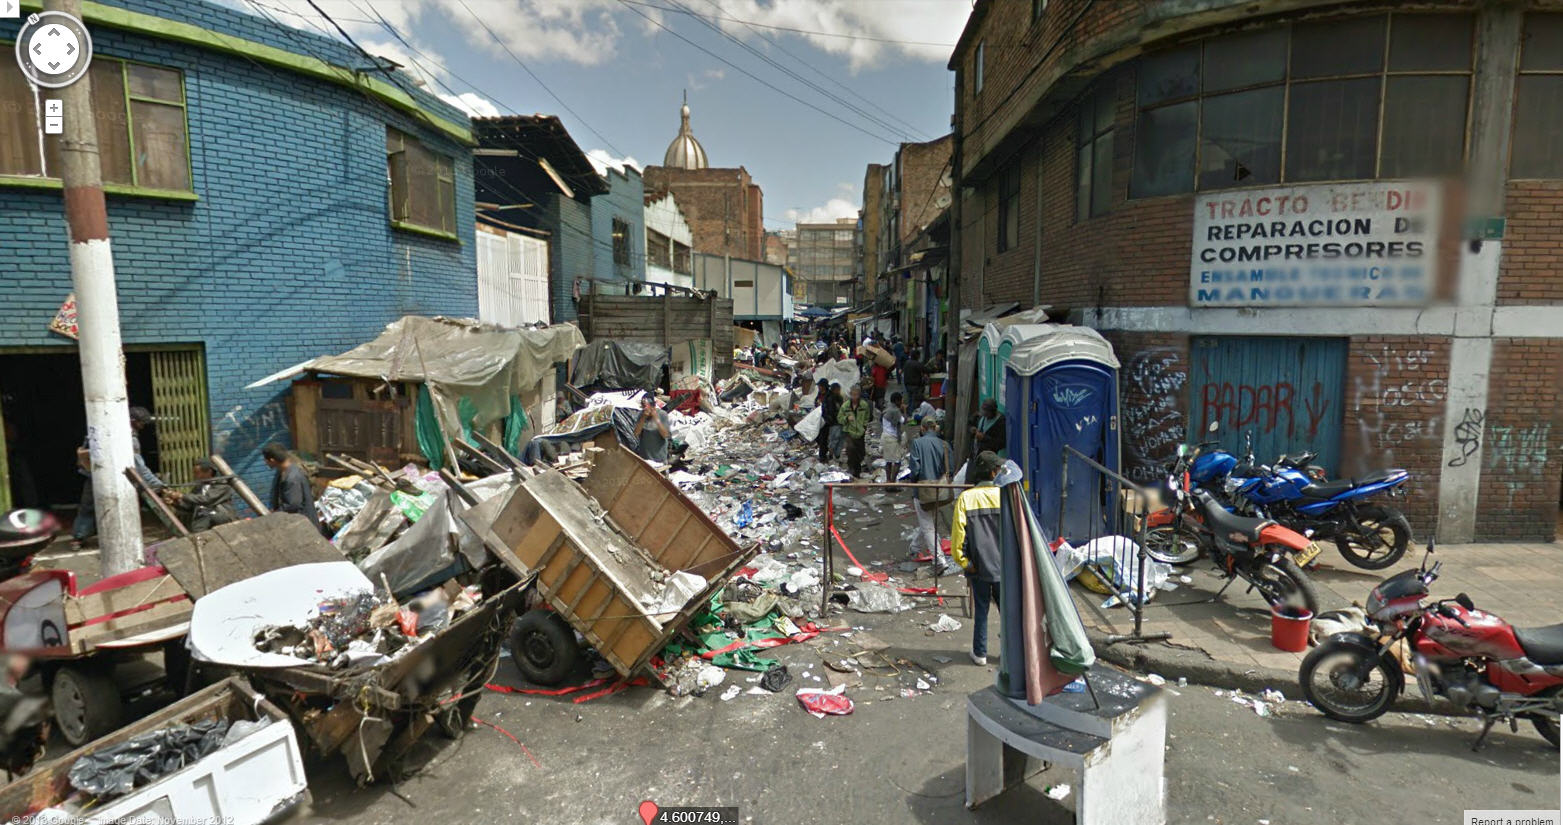 Not the Nicest Google Street View Colombia Image